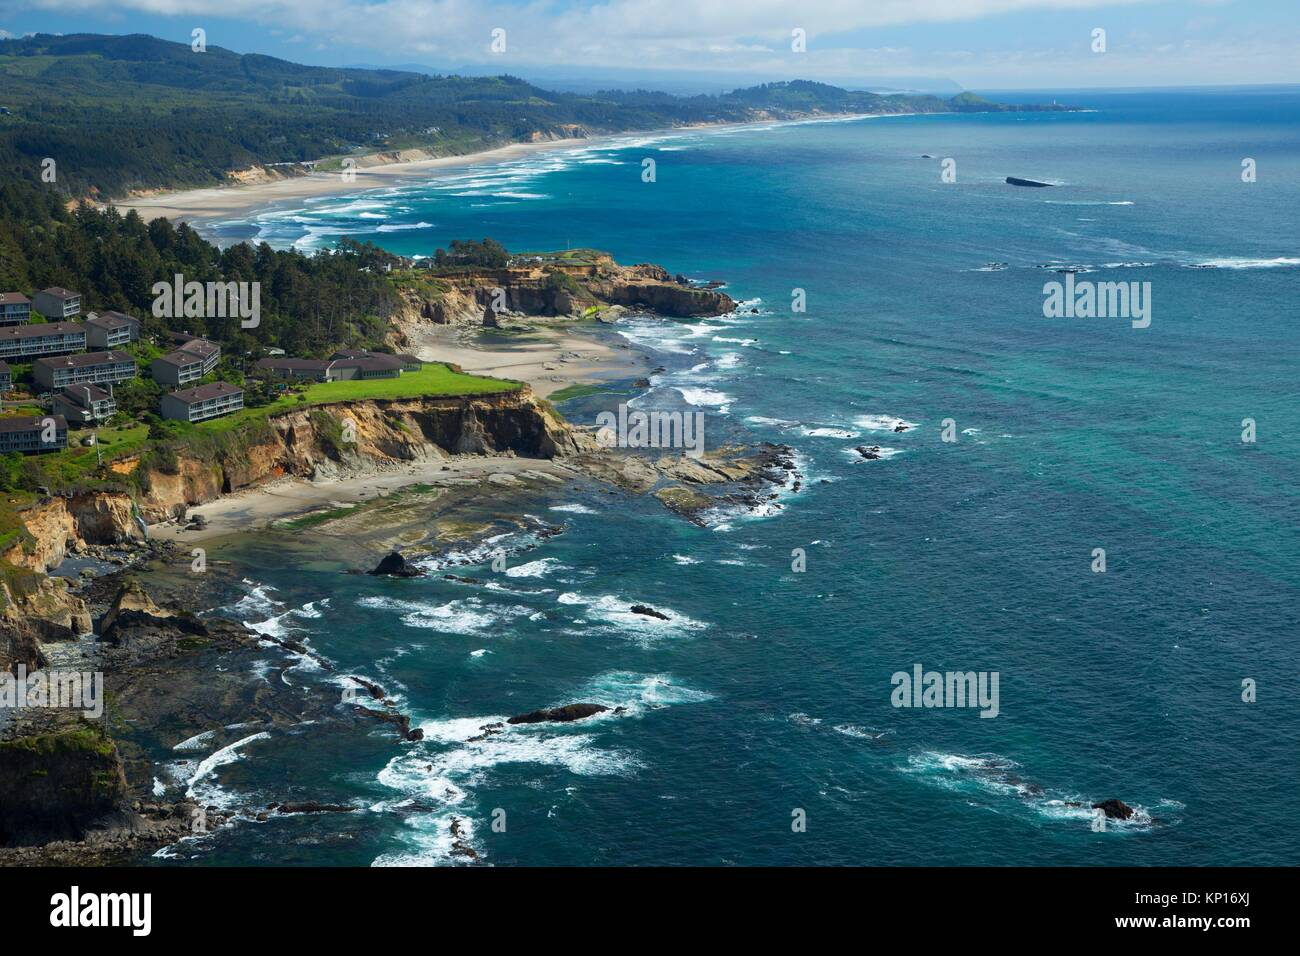 Otter Crest, Cape Foulweather State Park, Oregon. - Stock Image